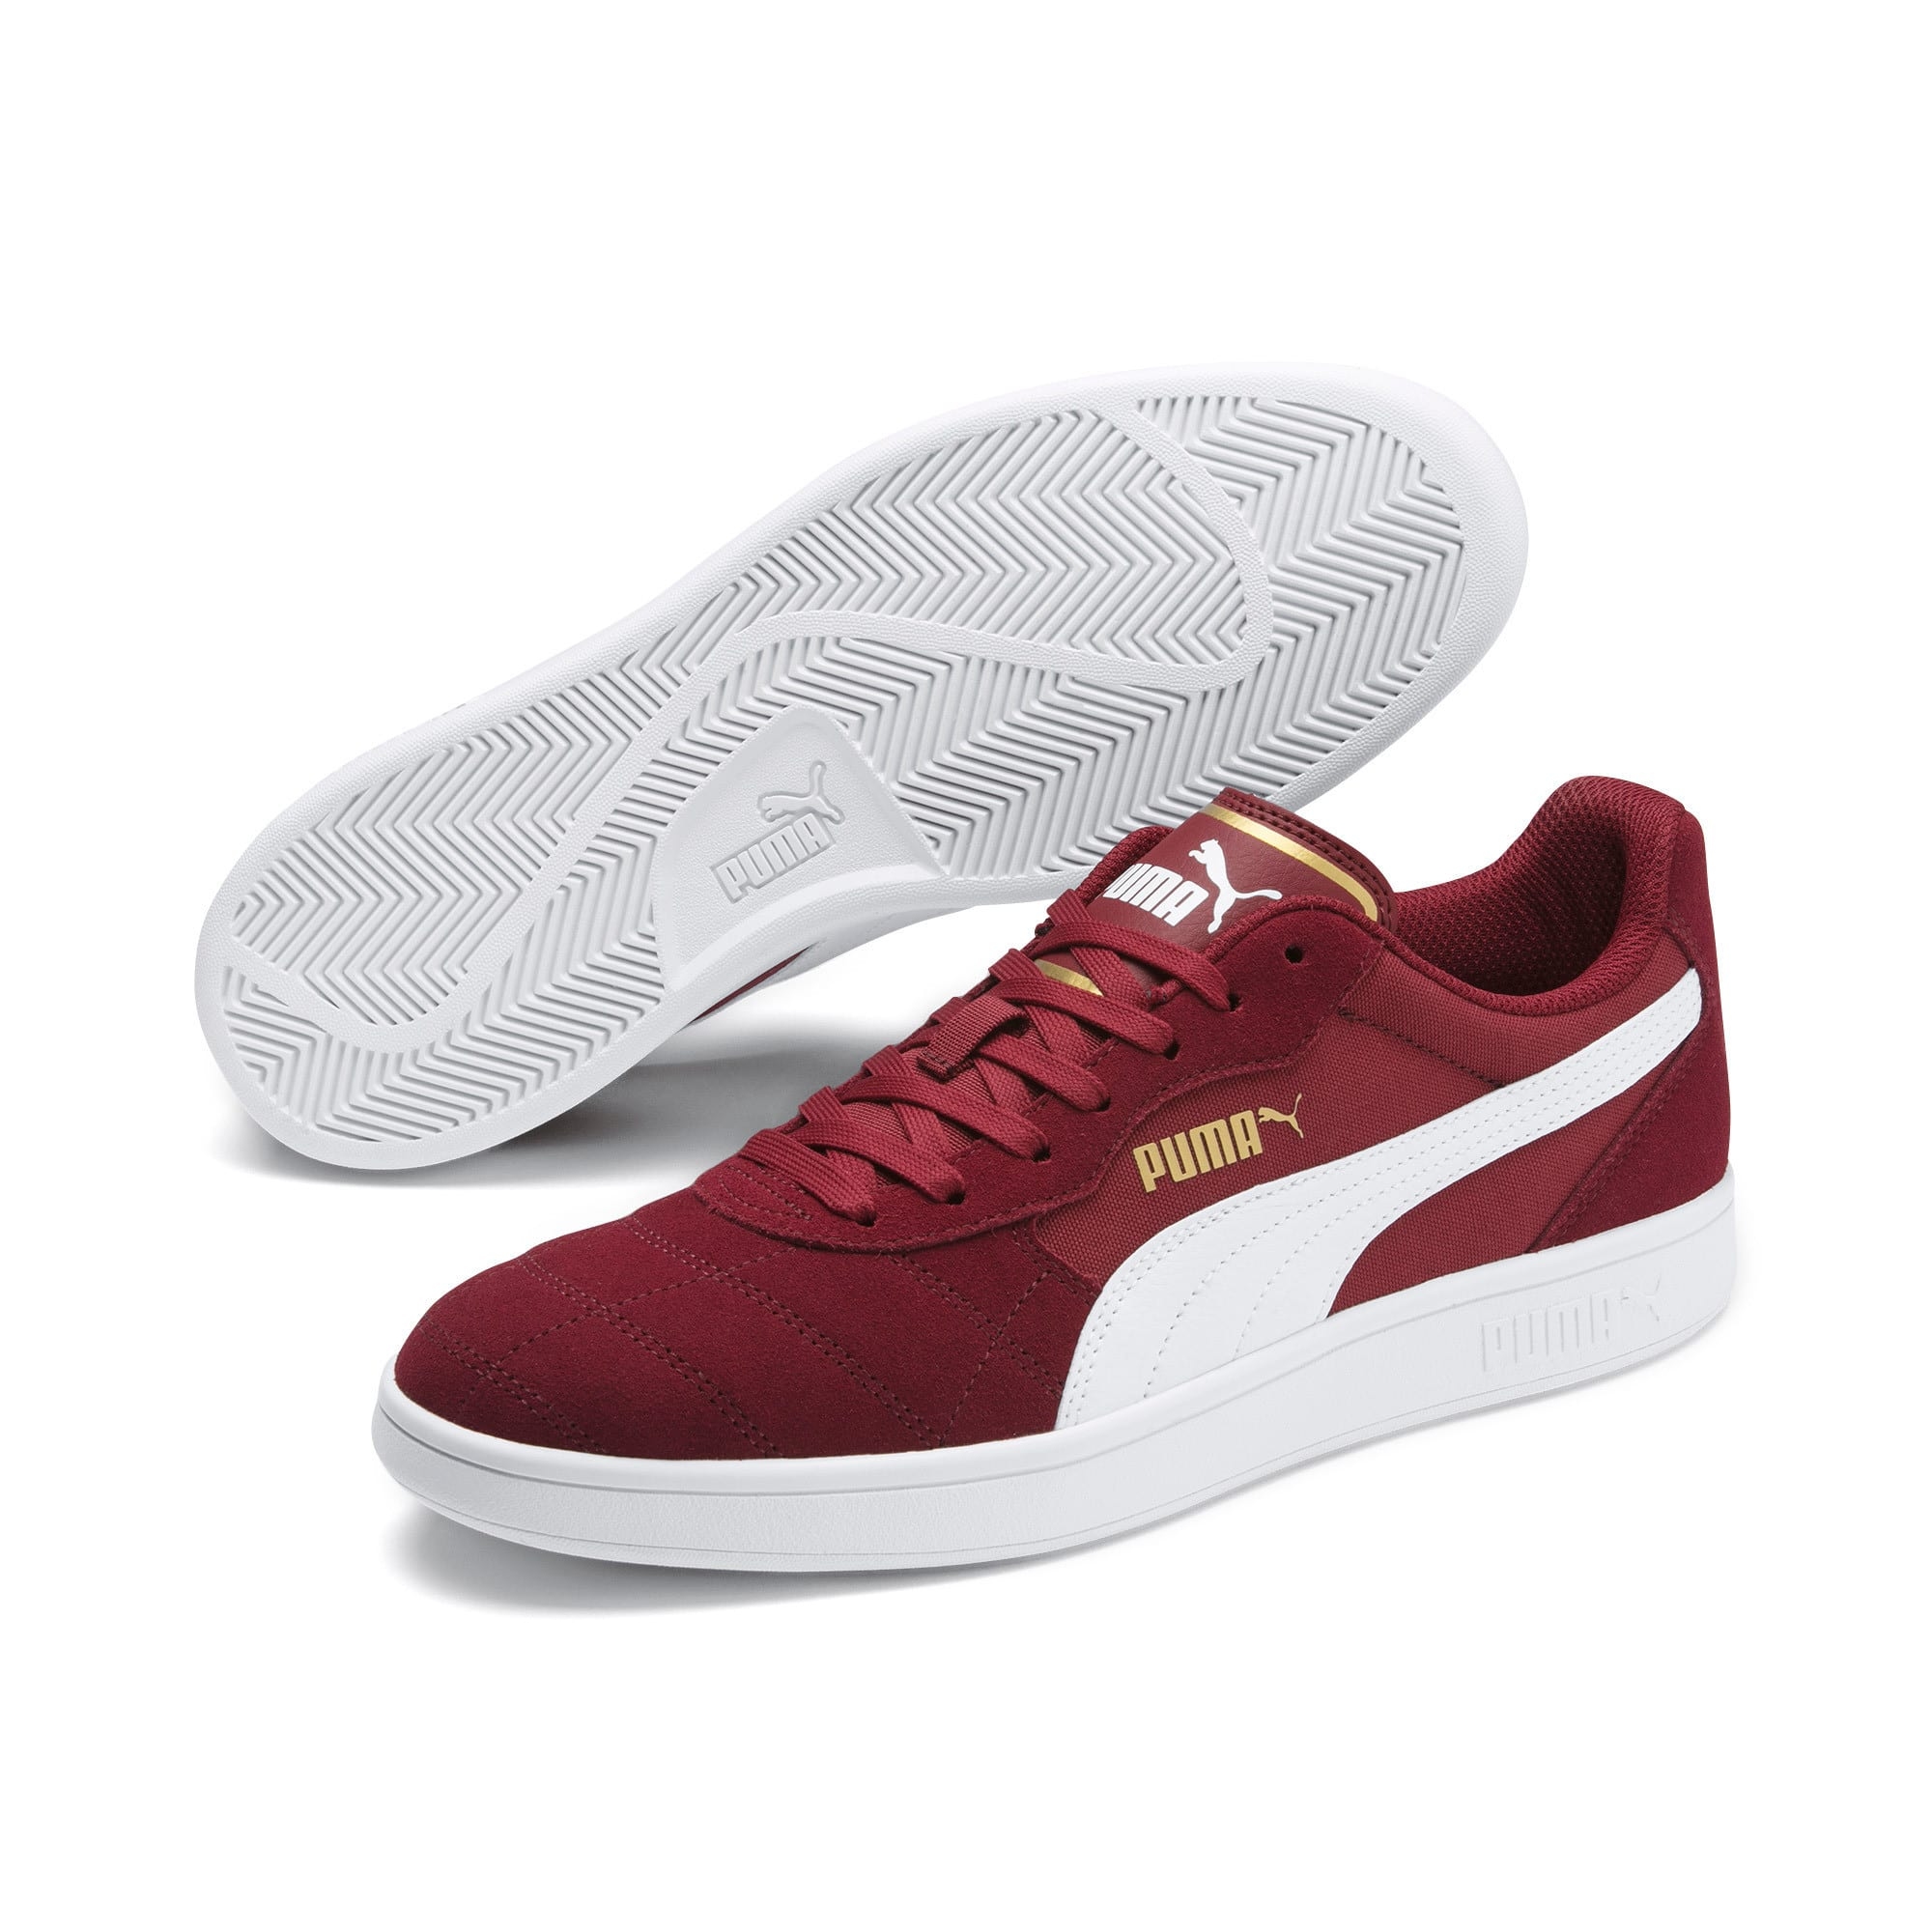 Thumbnail 3 of Zapatillas Astro Kick, Rhubarb-Puma White-Gold, medium